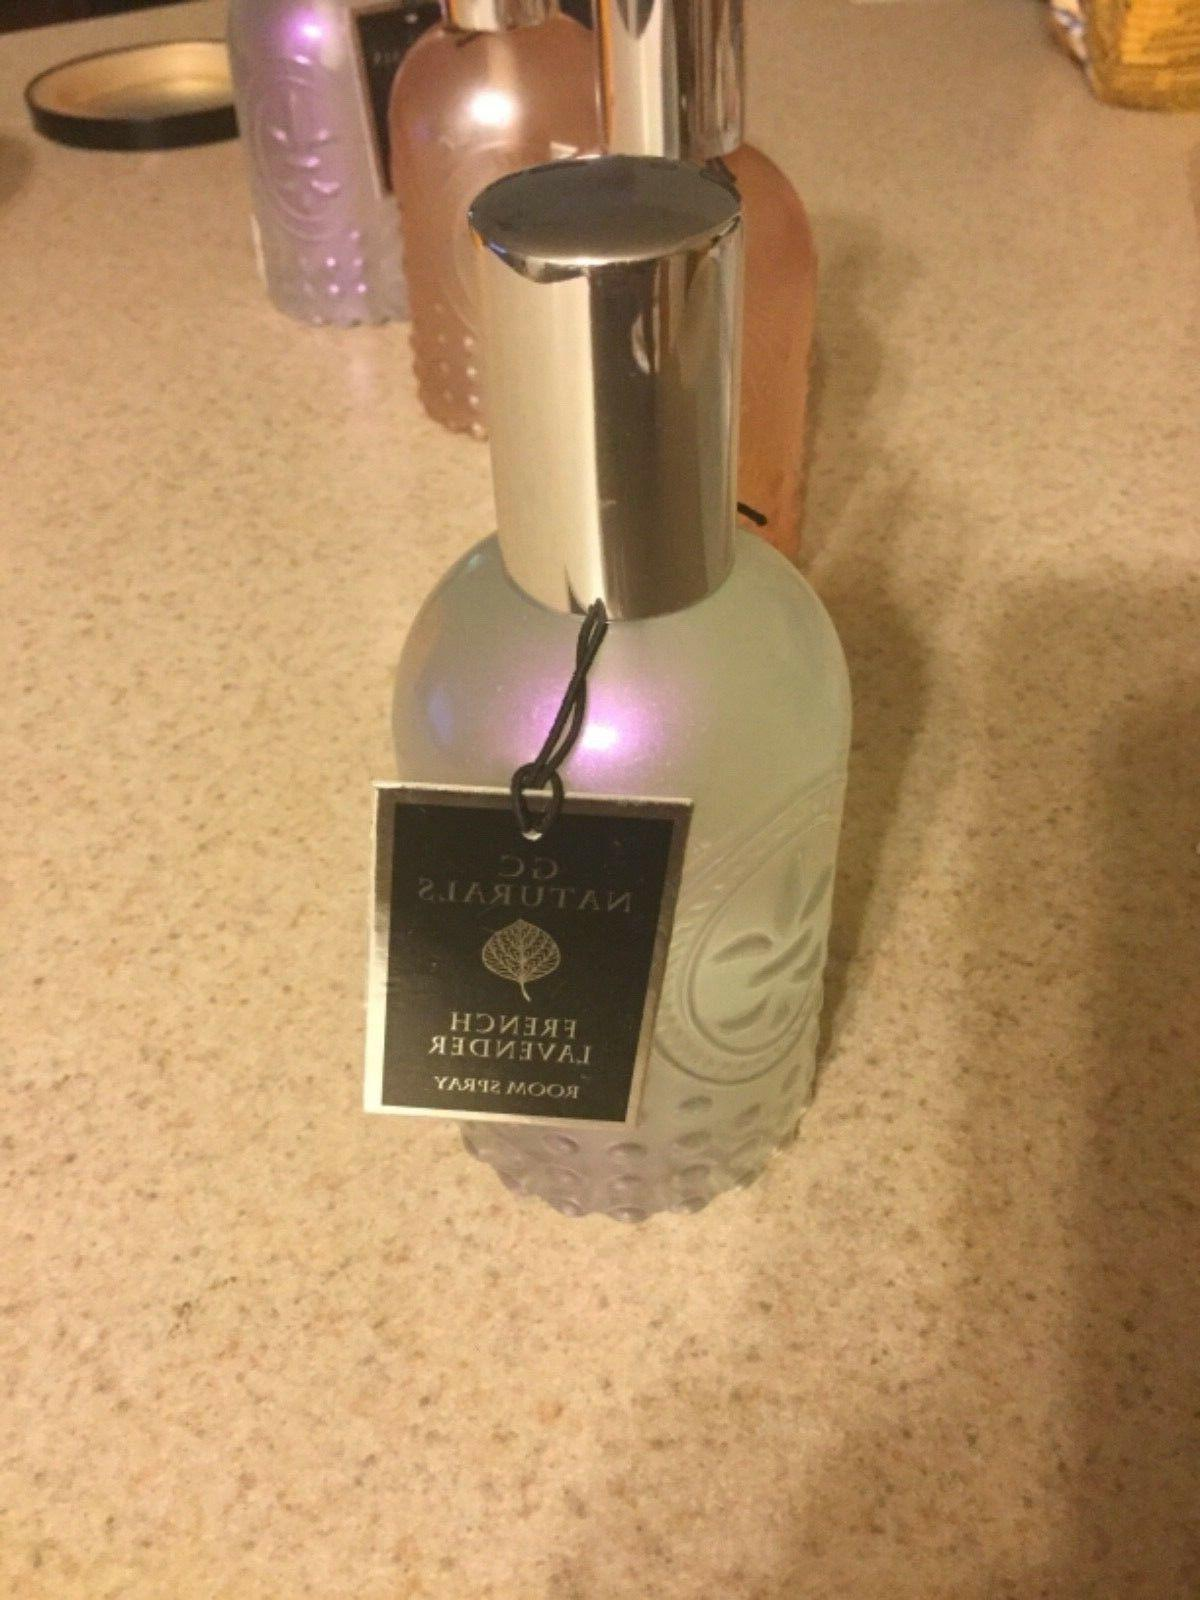 GC Naturals Room Fragrance Spray French Lavender New